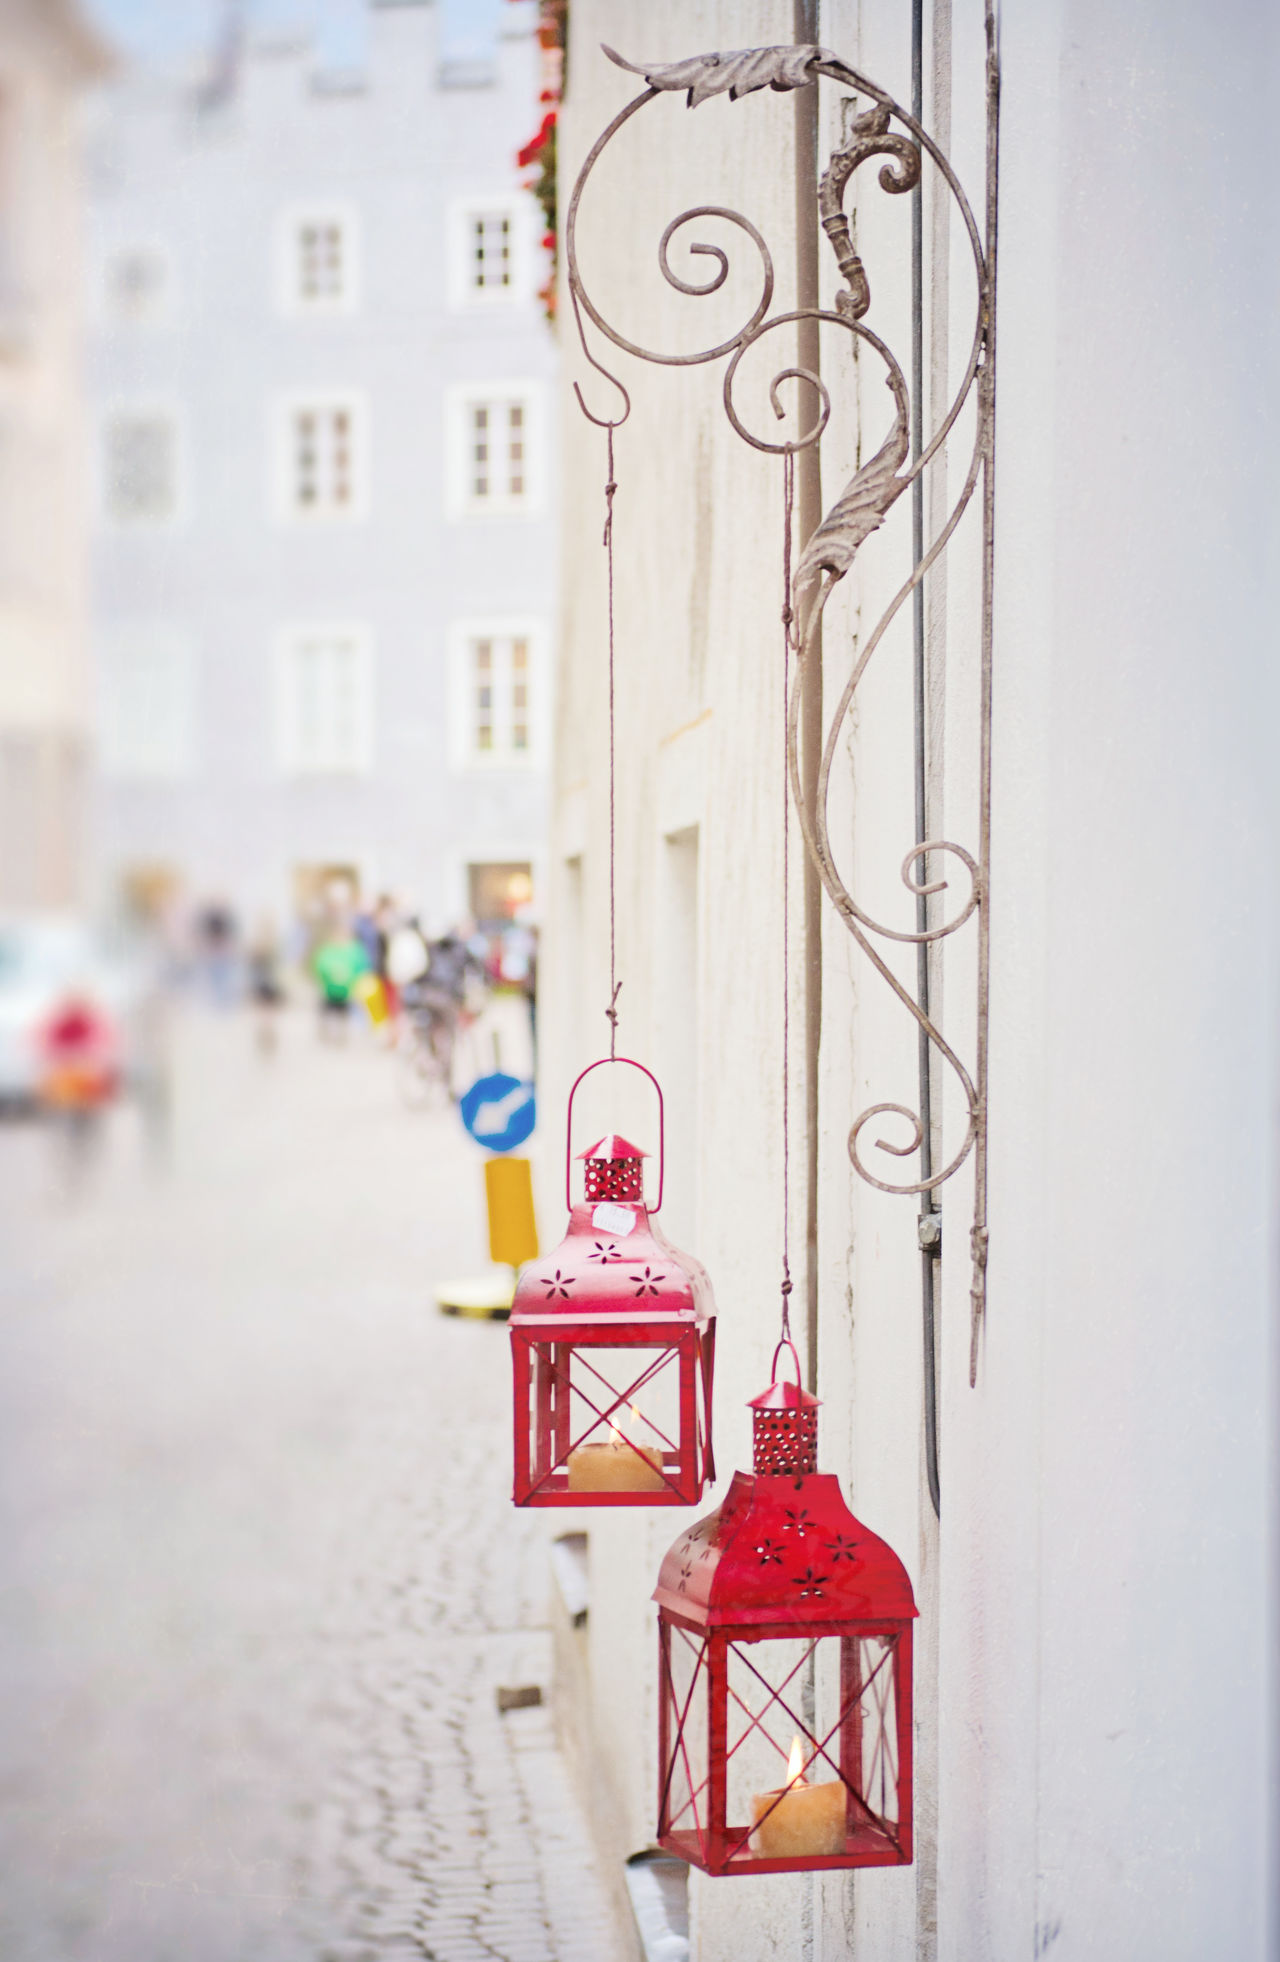 Close up of two red lanterns in Bressanone in the Italian Alps Bressanone Brixen  Building Exterior Close-up Europe European  Focus On Foreground Italian Alps Italy No People Outdoors Red Red Lanterns Shopping Travel Travel Photography